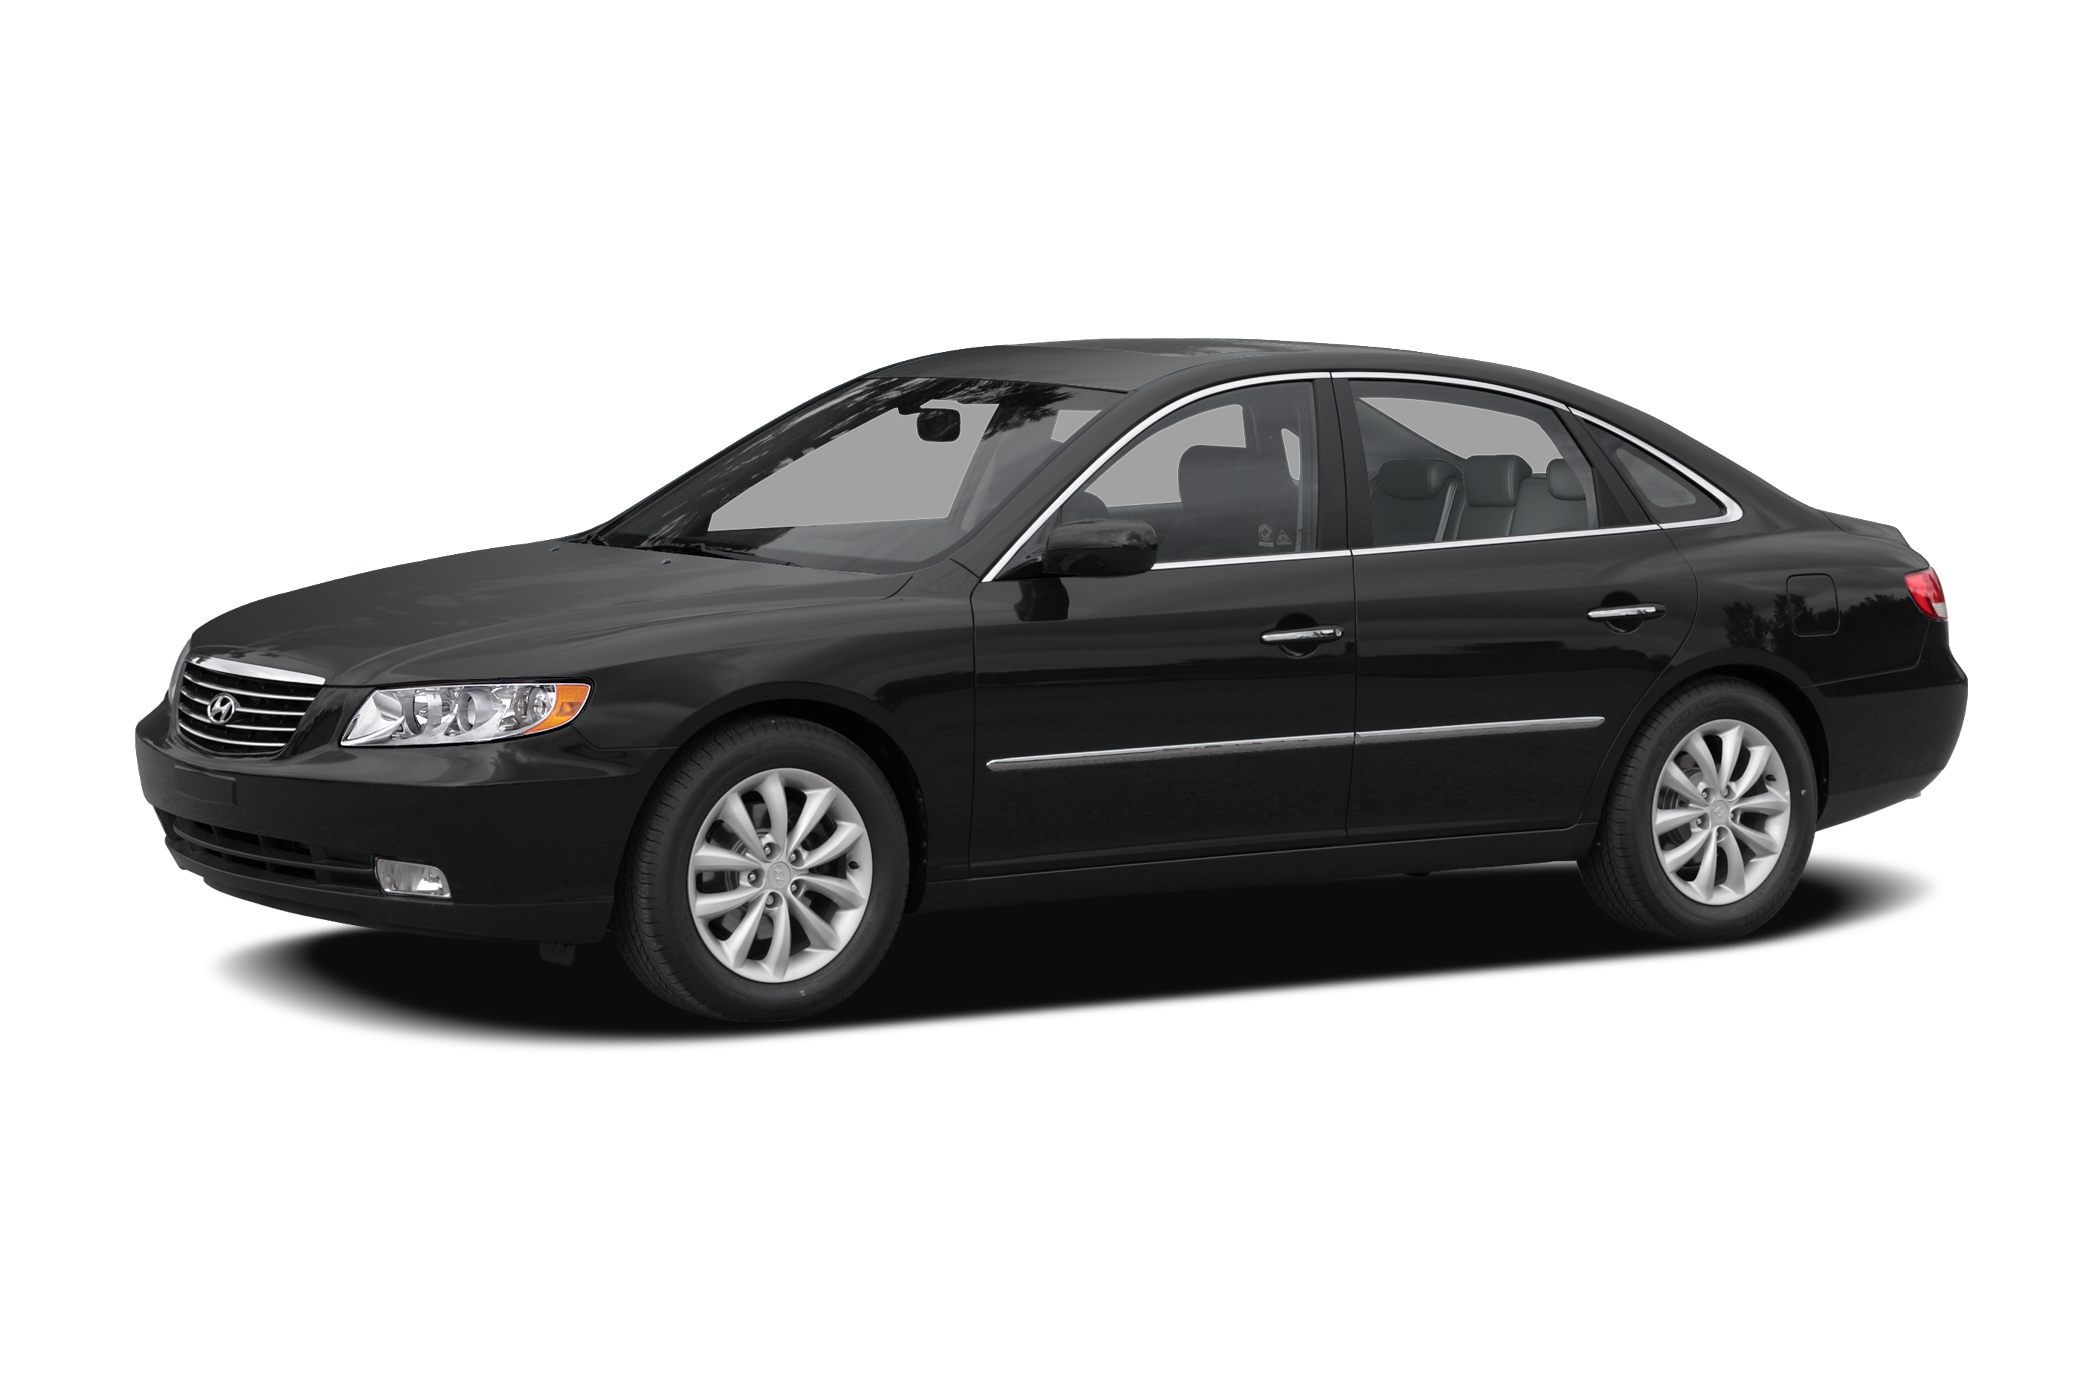 2007 Hyundai Azera  Silver Bullet Car buying made easy How appealing is the guilty indulgence of